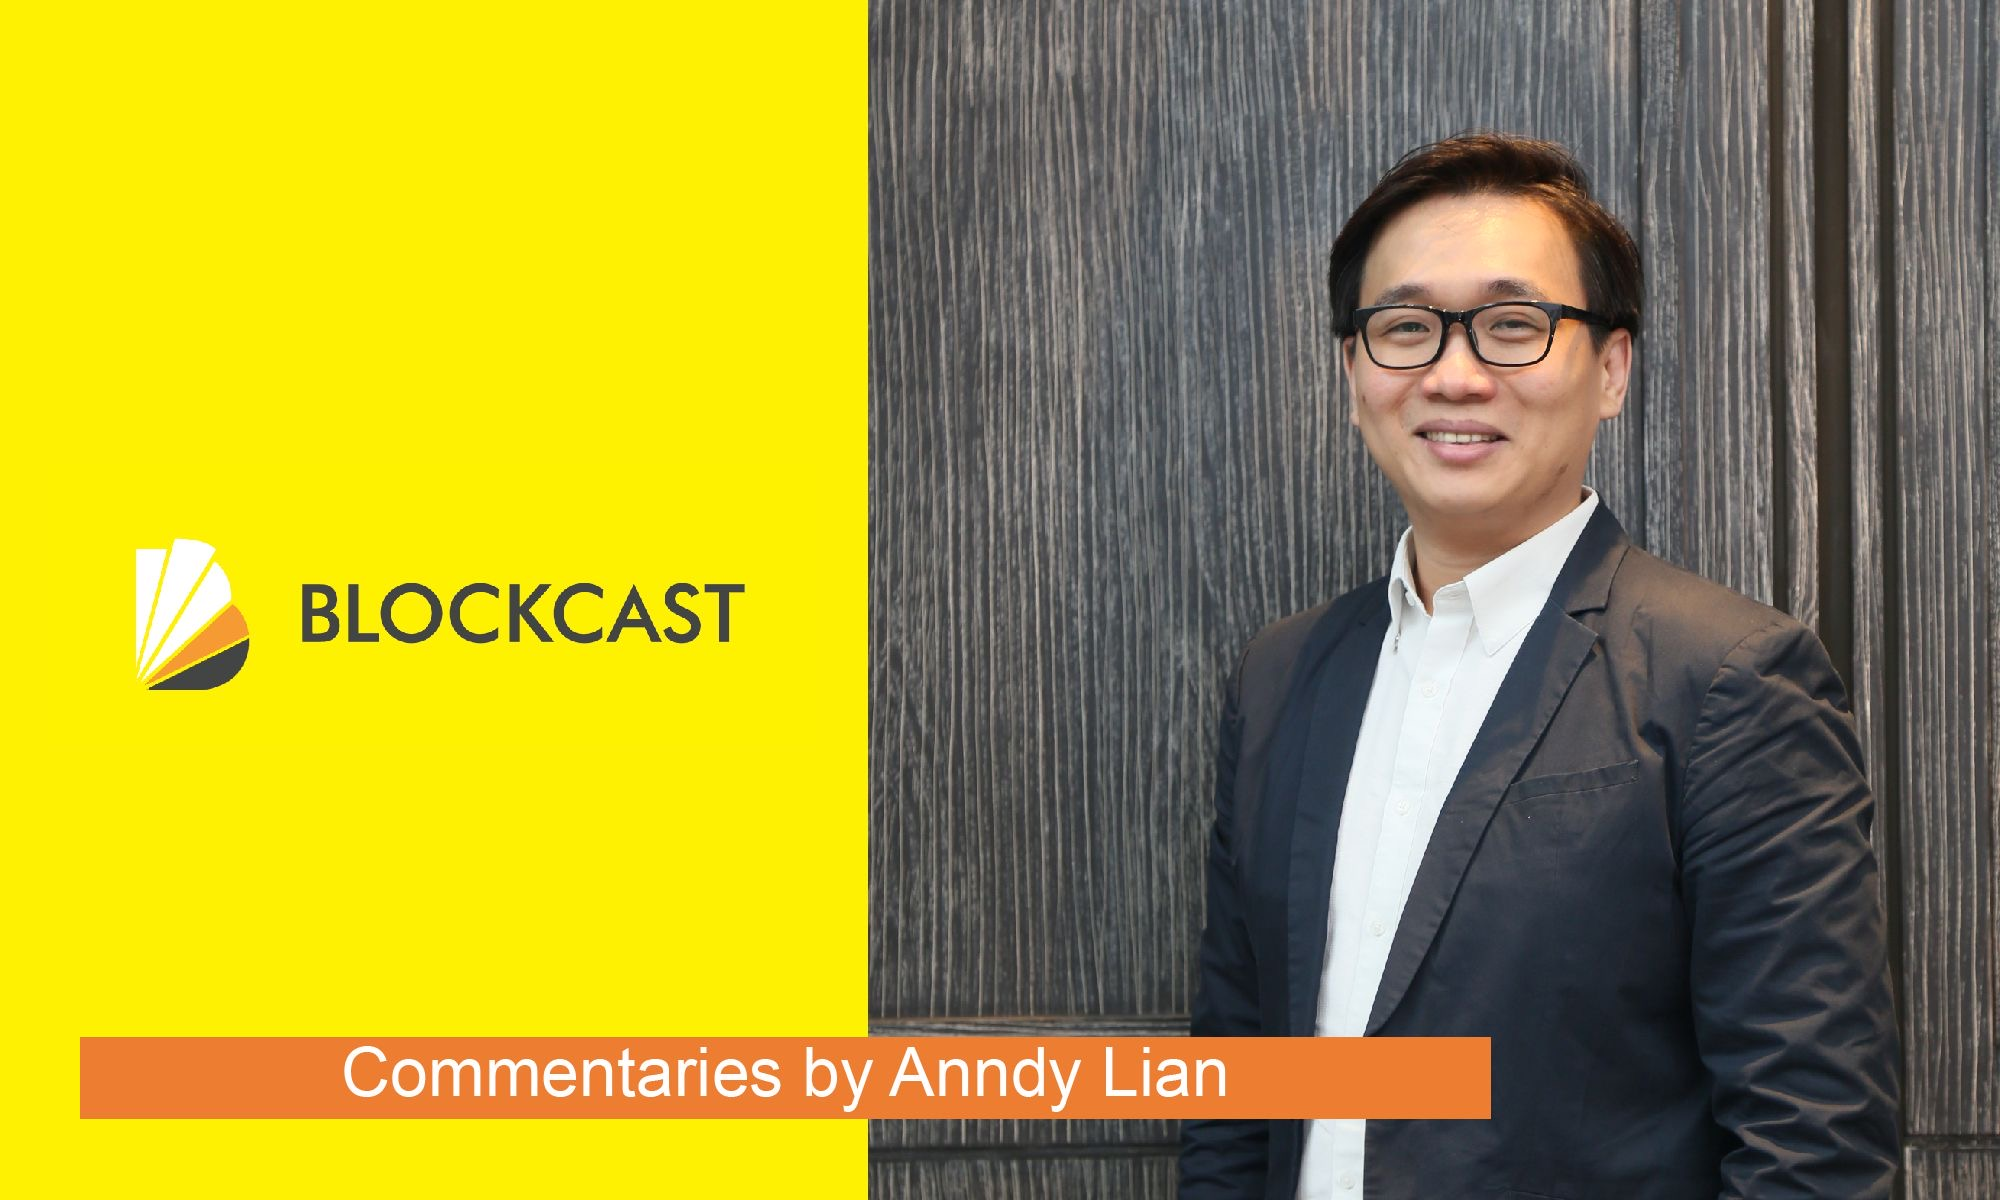 """Commentaries by Anndy Lian """"New Global Standards Come with the Marriage of Binance Coinmarketcap"""